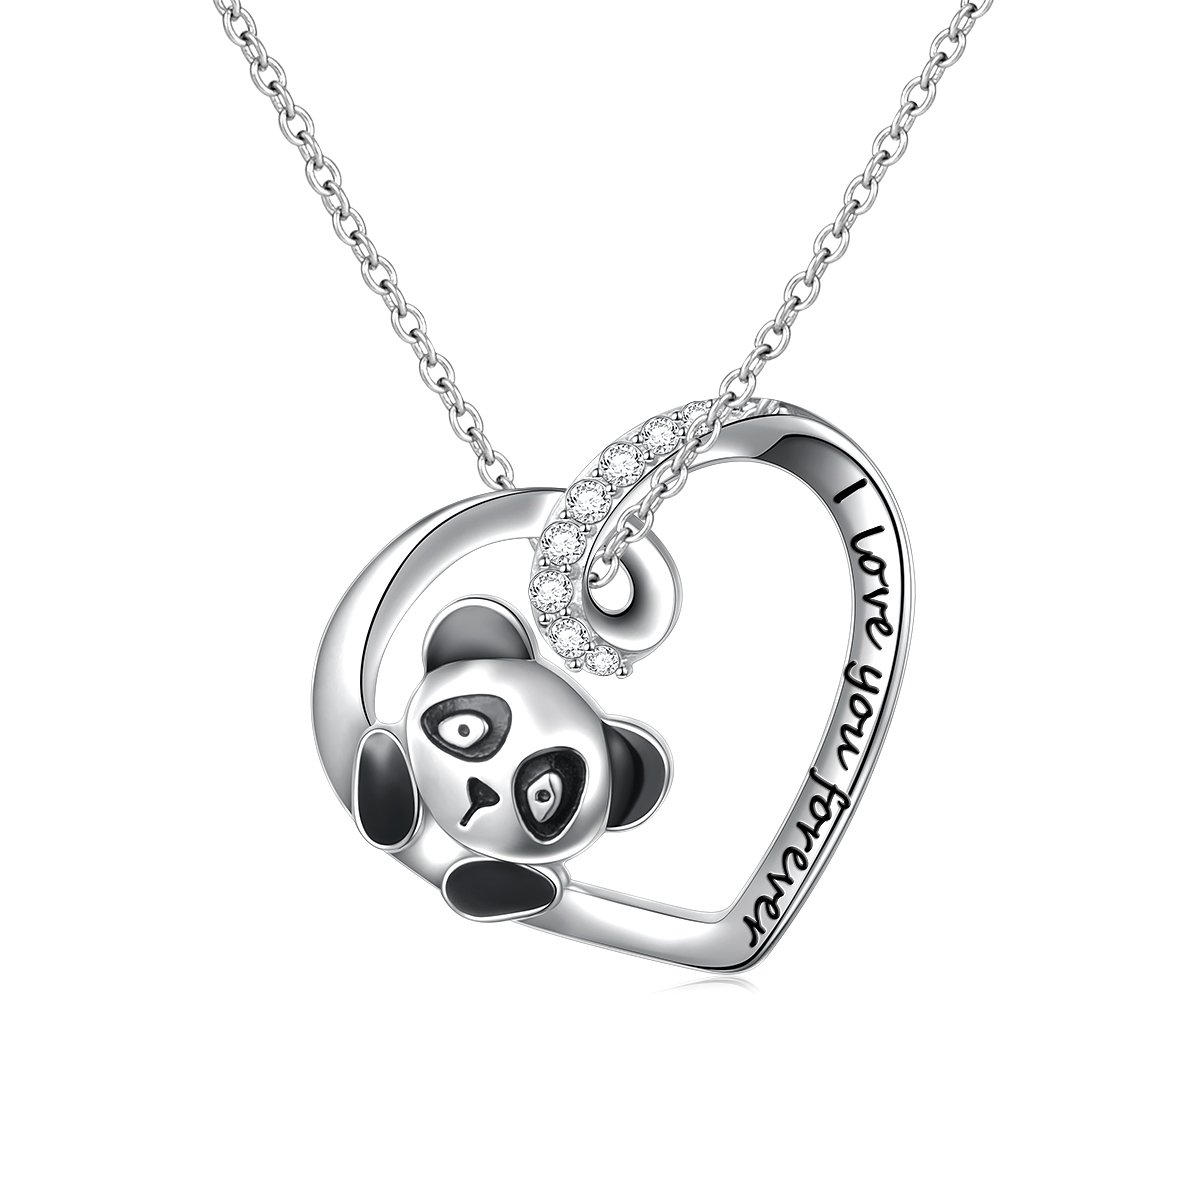 SILVER MOUNTAIN 925 Sterling Silver Engraved I Love You Forever Cute Animal Panda Pendant Necklace for Women Gift, 18'' Rolo Chain